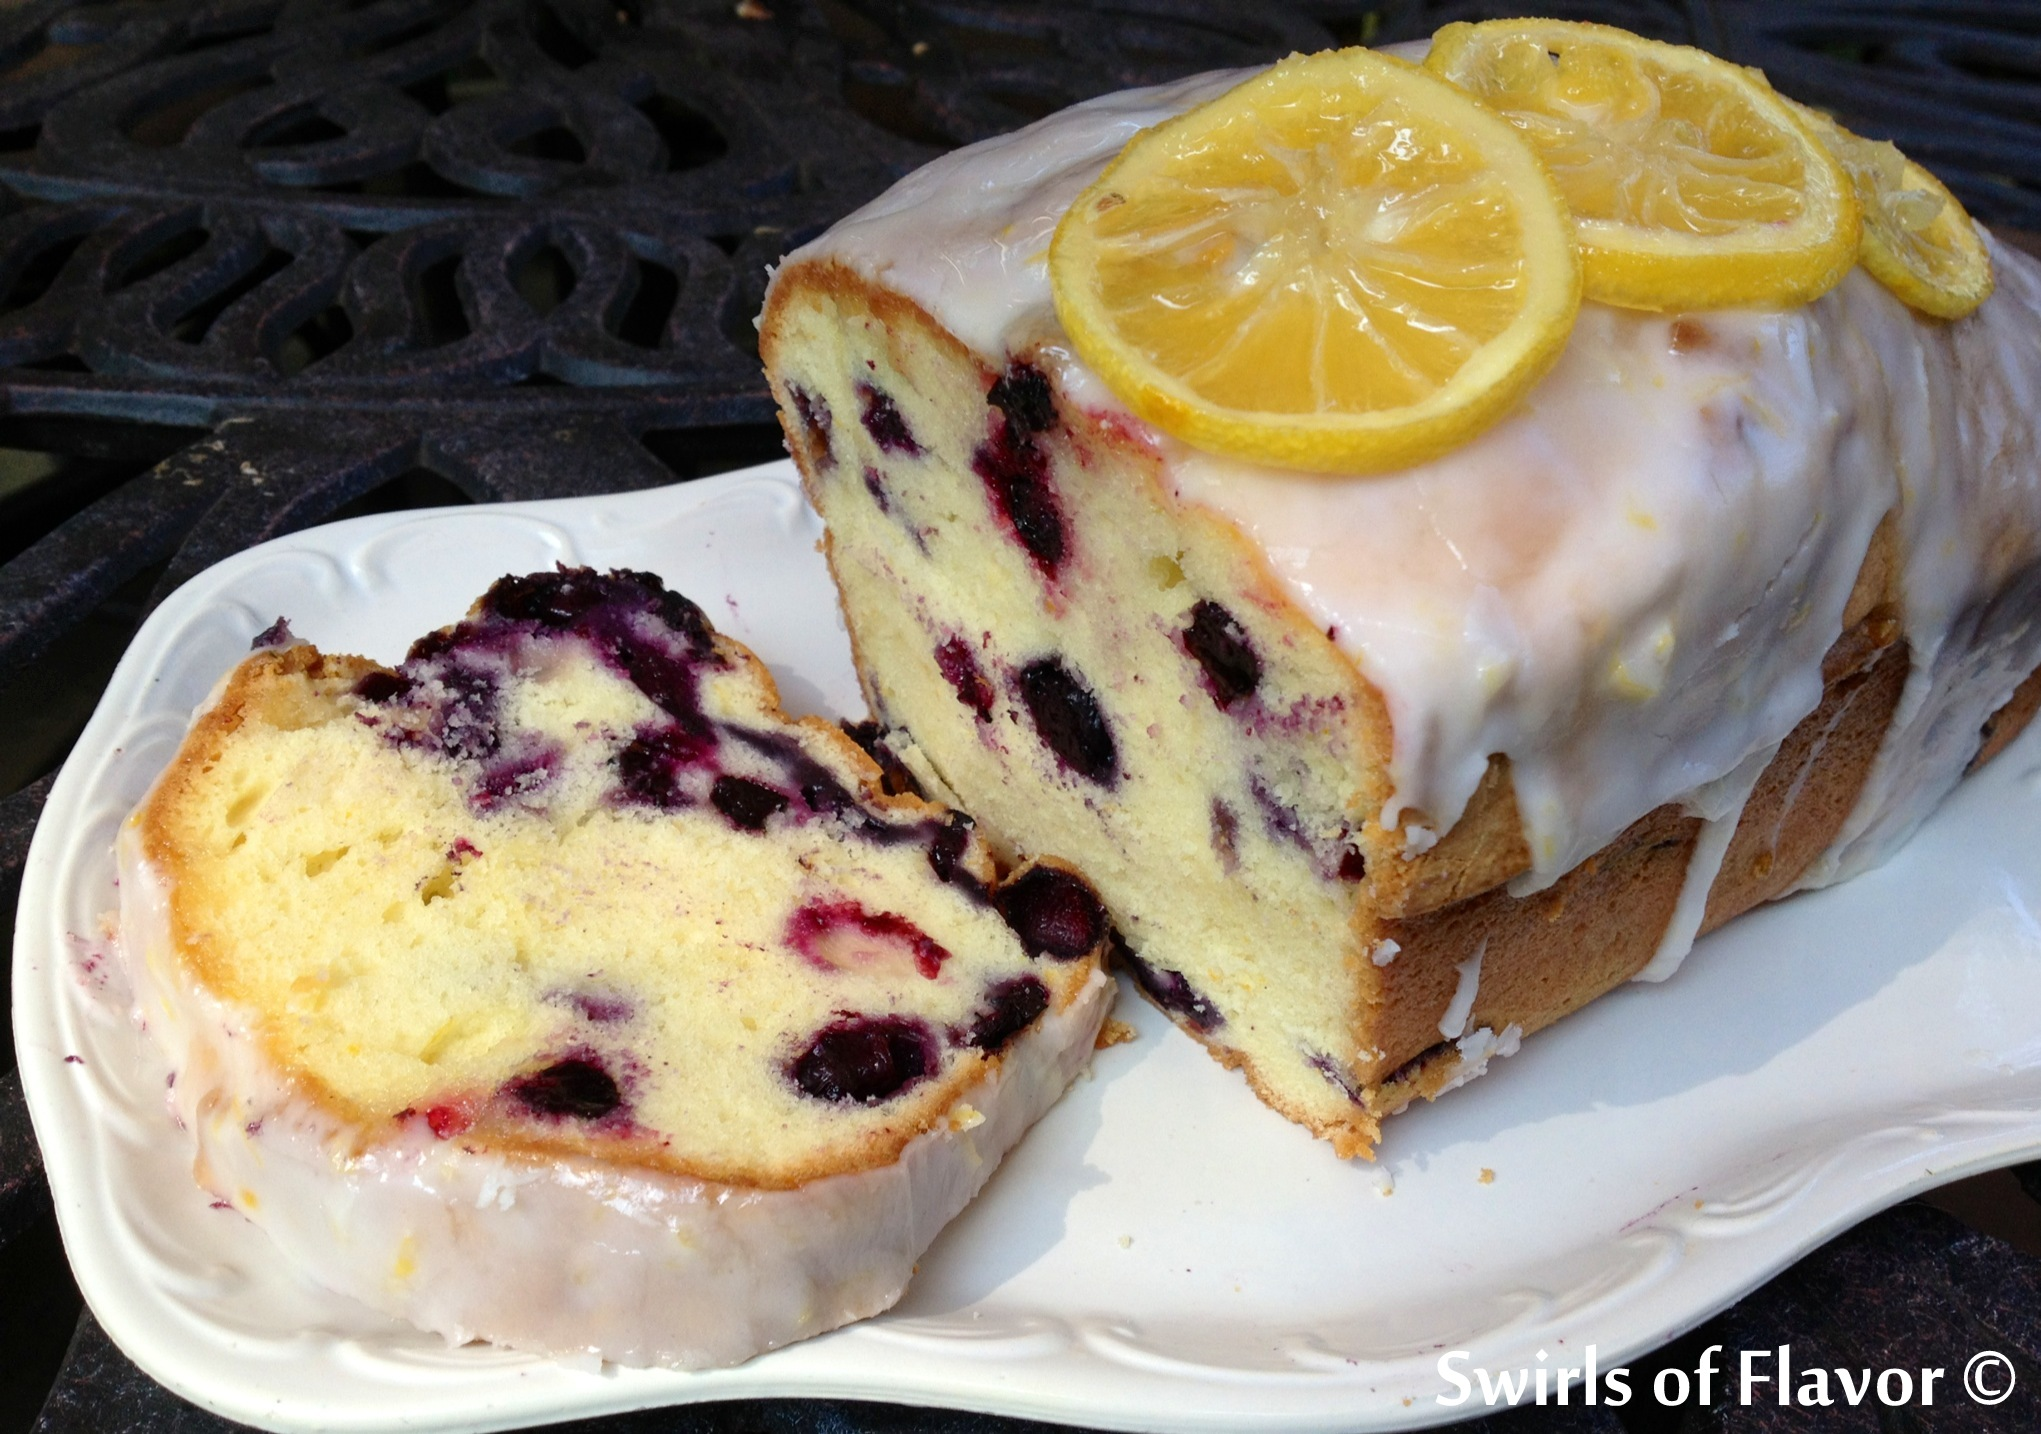 Meyer Lemon Glazed Blueberry Pound Cake - Swirls of Flavor